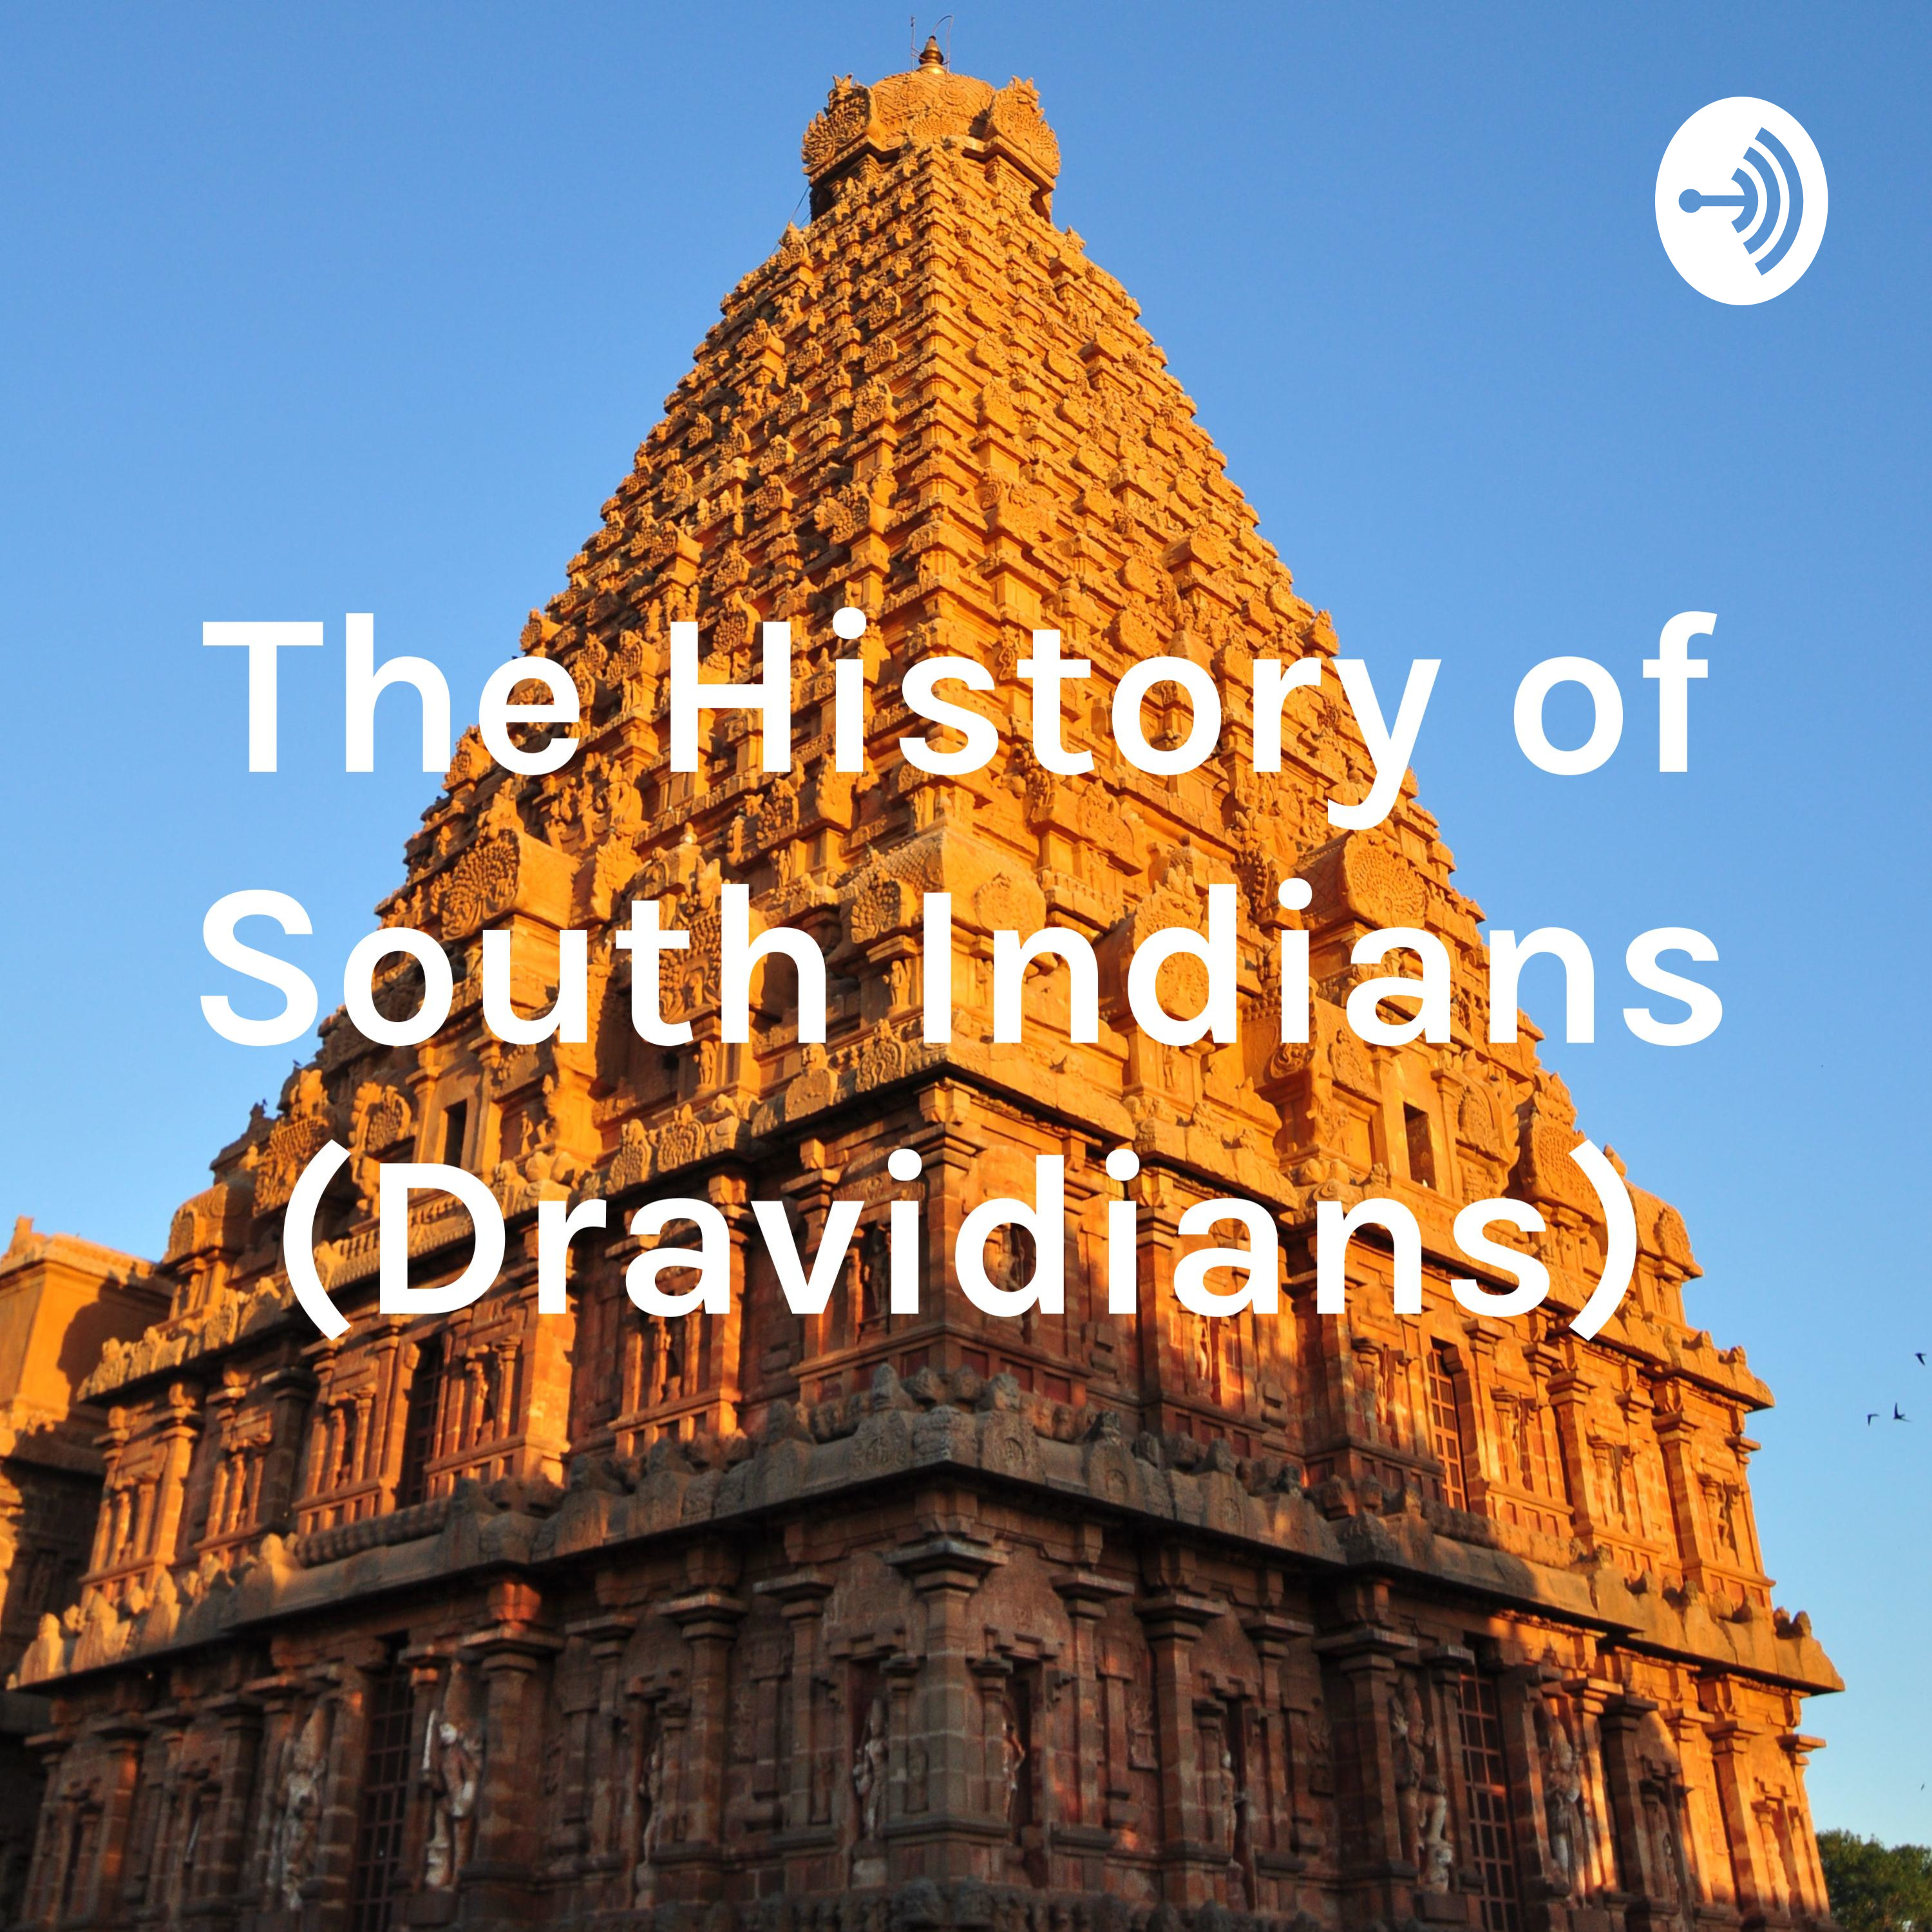 The History of South Indians - Trailer